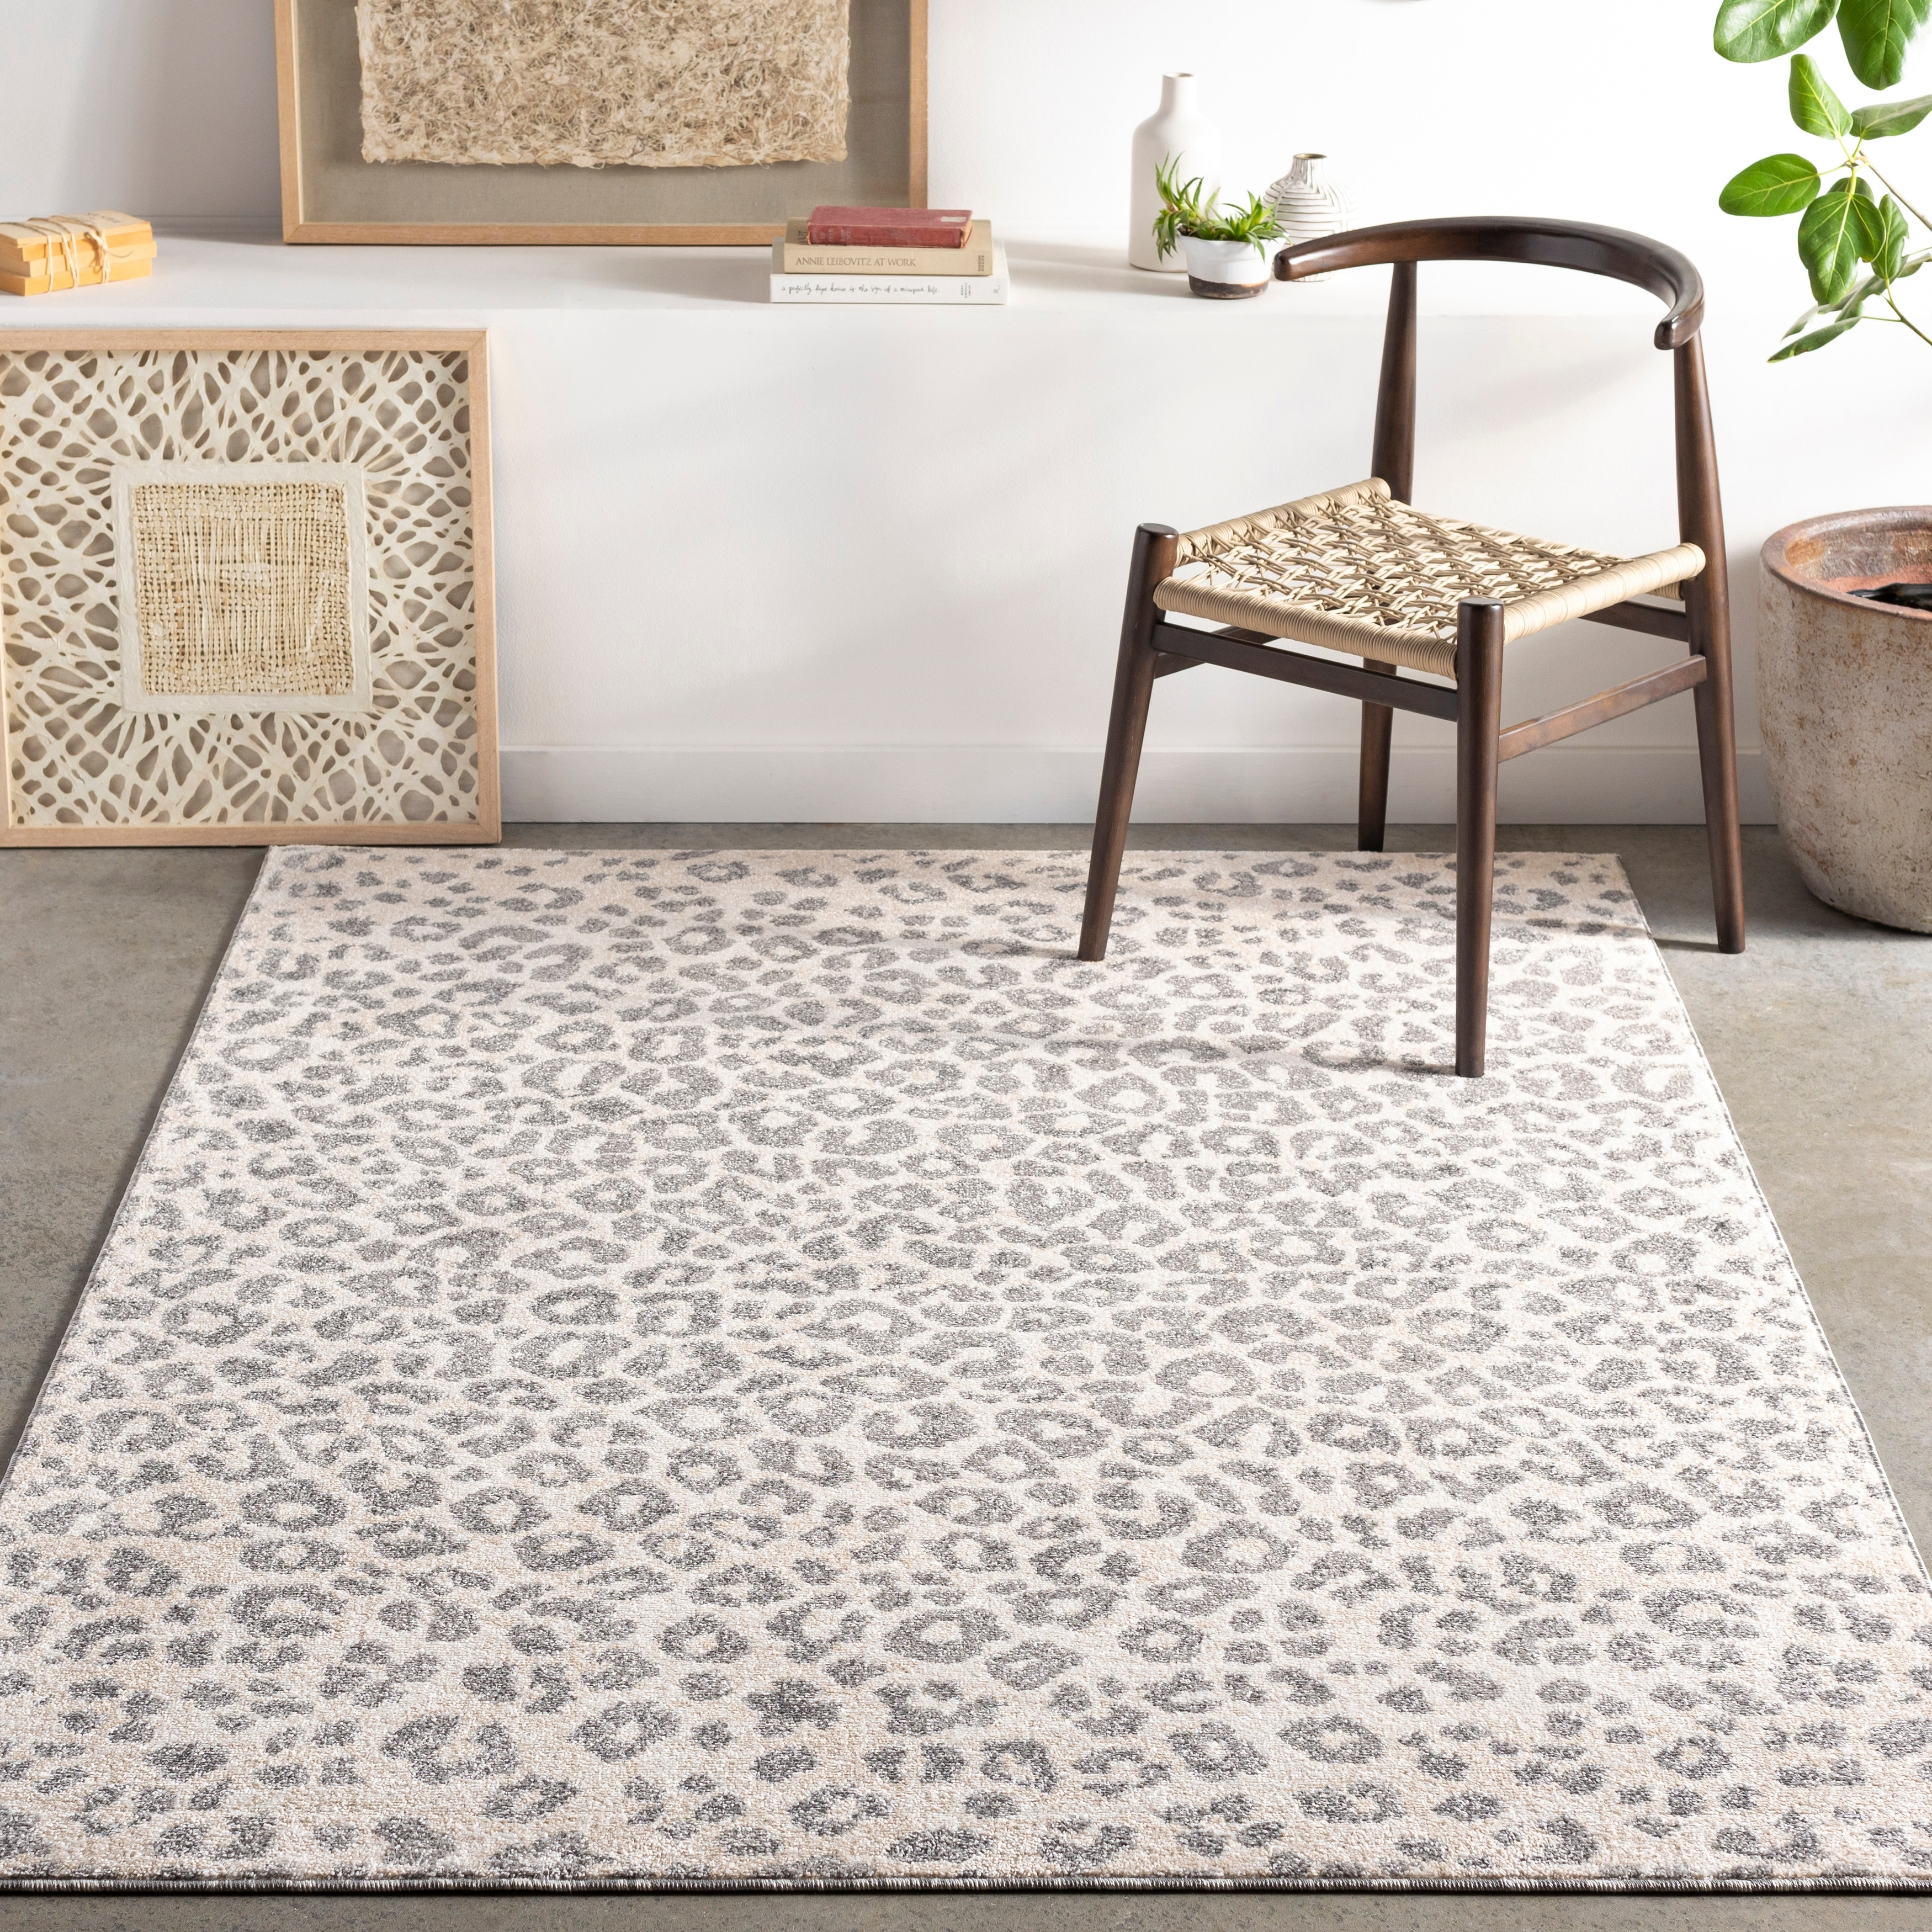 Moodie Modern Leopard Print Area Rug Overstock 31317349